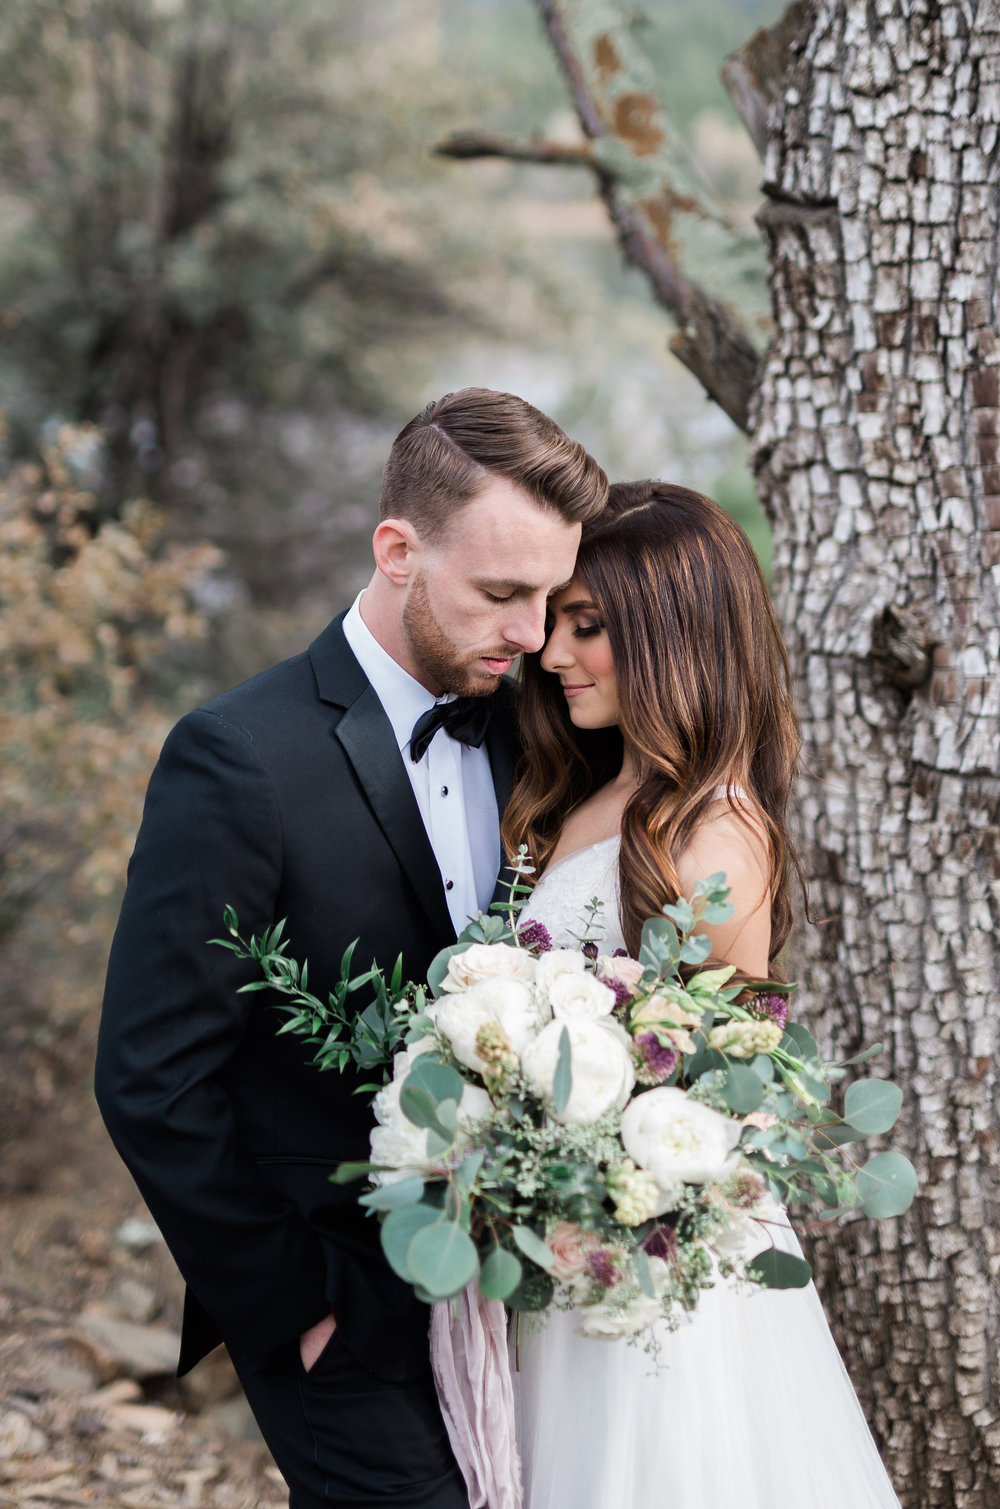 Arizona Lakeside Winter Elopement with Saje Photography | Shotgunning for Love Letters